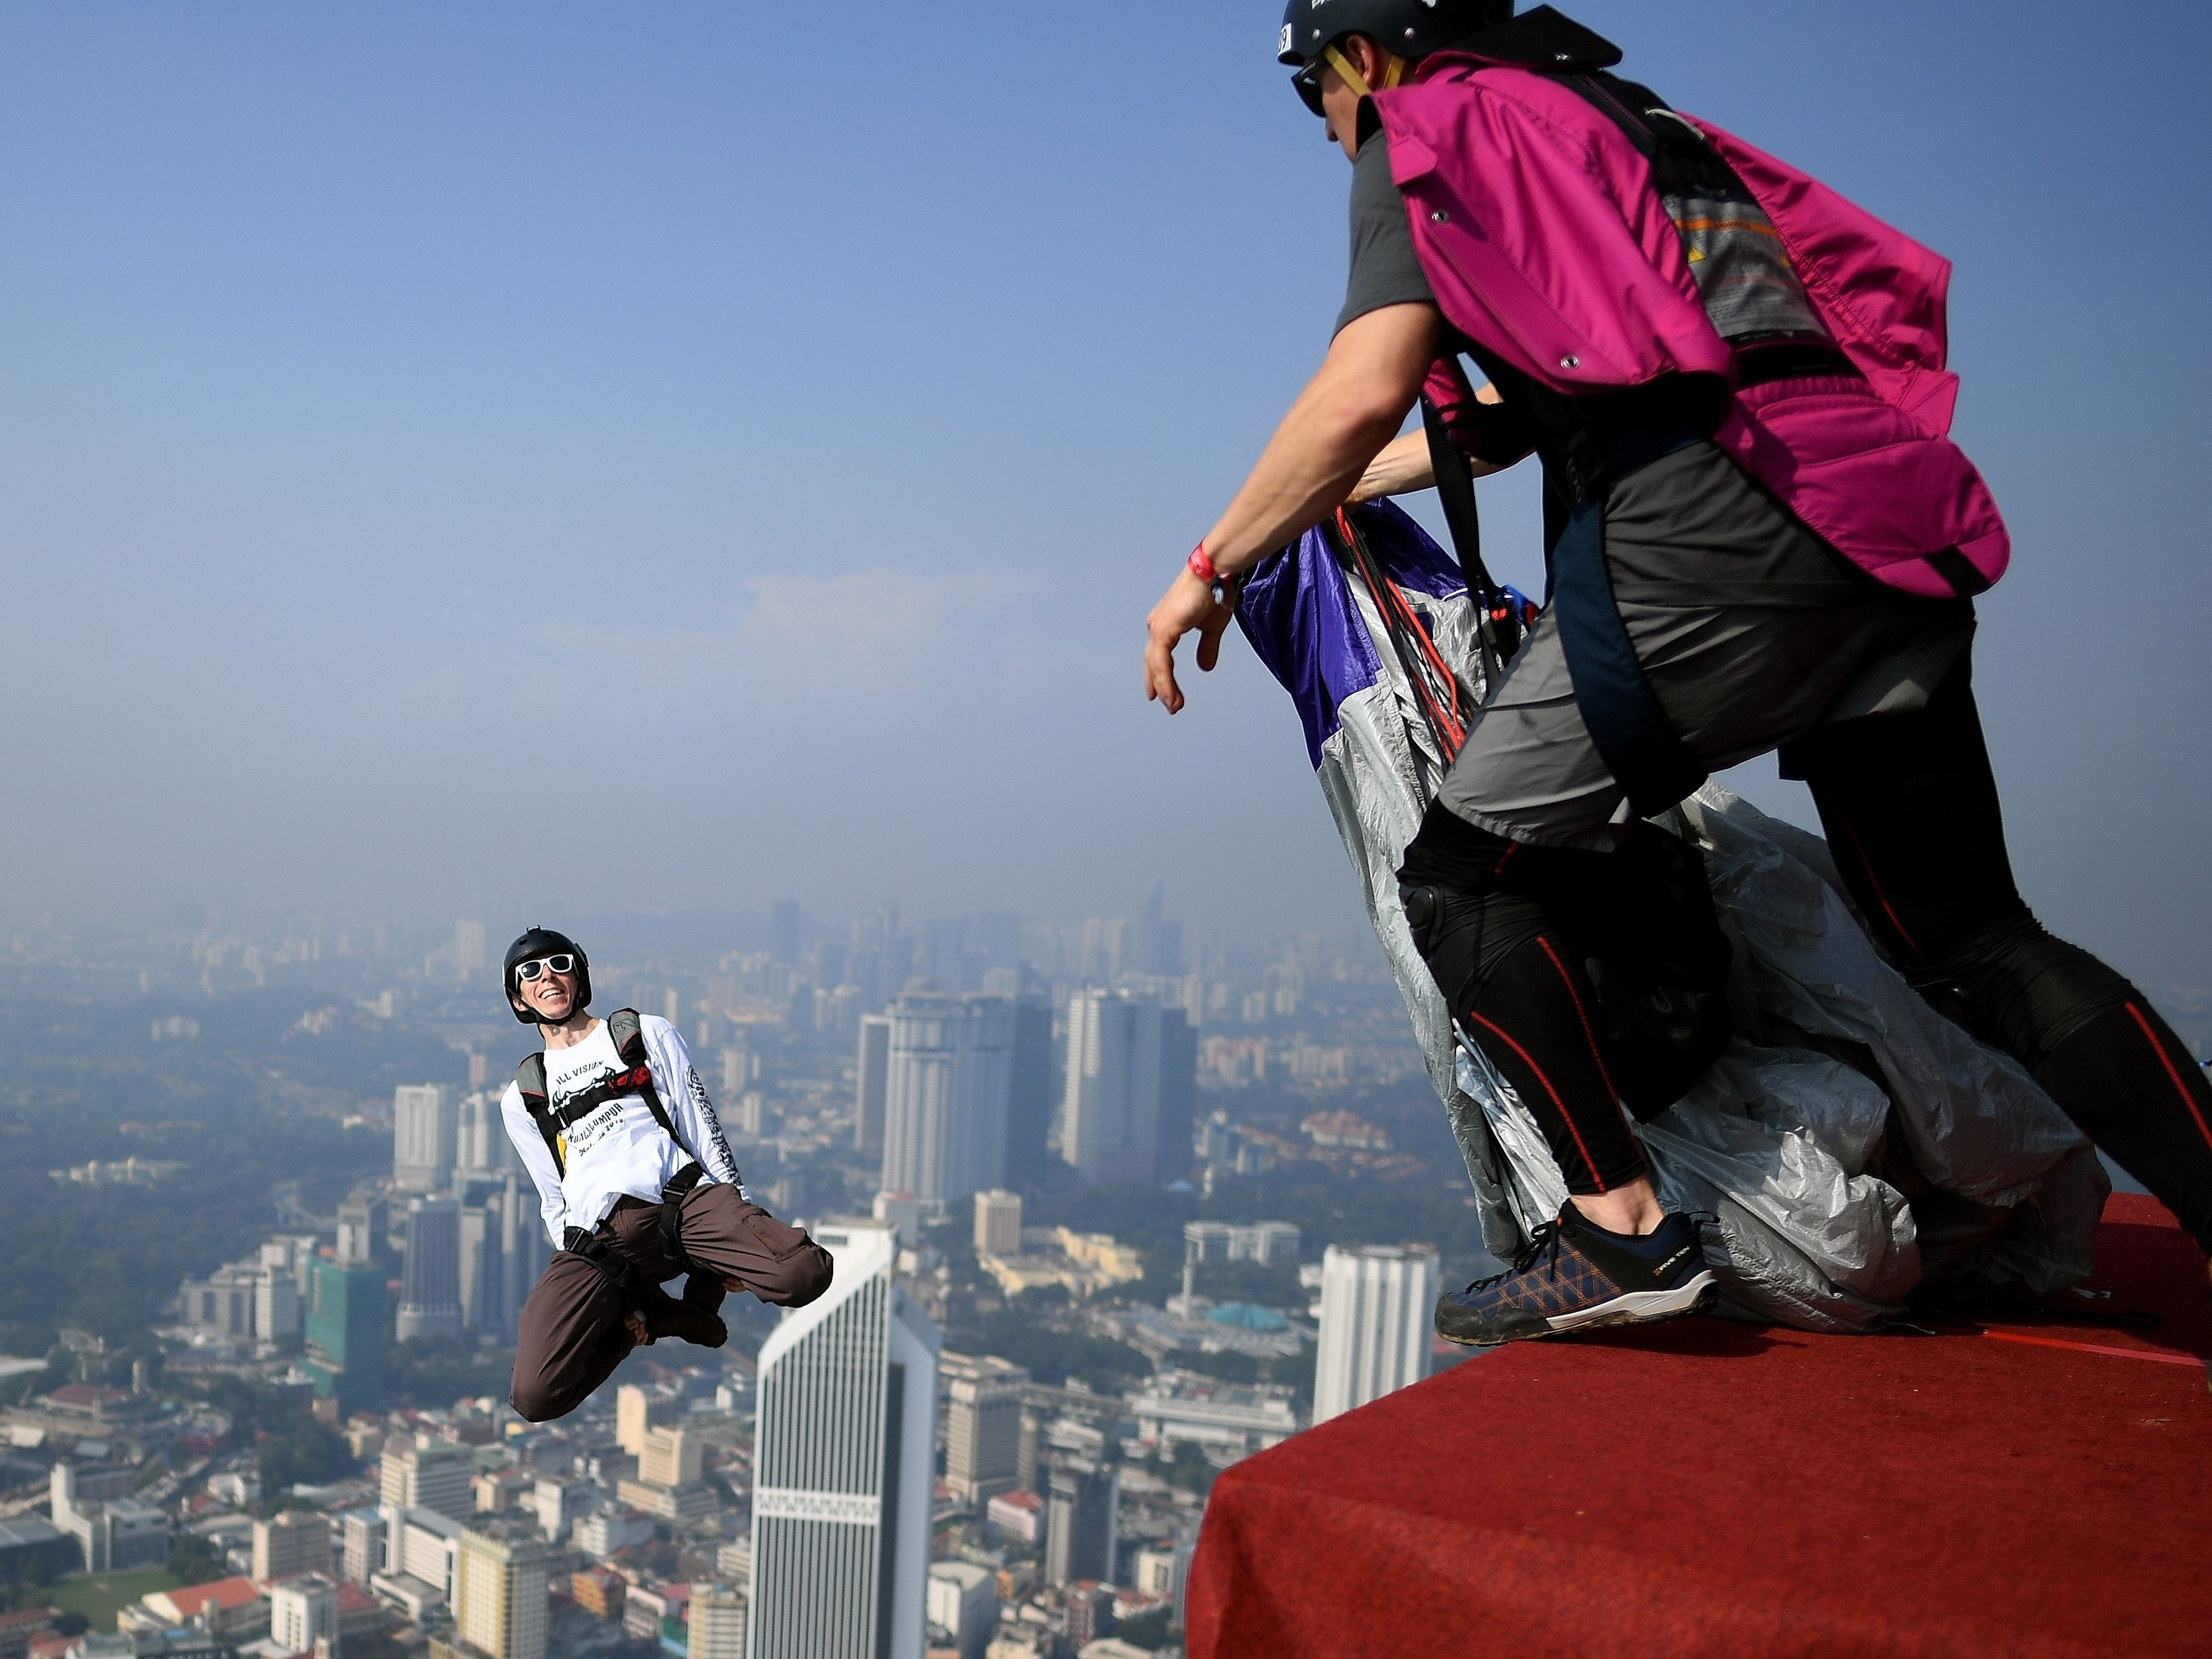 Base jumpers leap from the 300-metre high skydeck of Malaysia's landmark Kuala Lumpur Tower against the backdrop of the city's skyline in Kuala Lumpur on Sunday, Sept. 30, 2018 during the annual International KL Tower Base-Jump event.